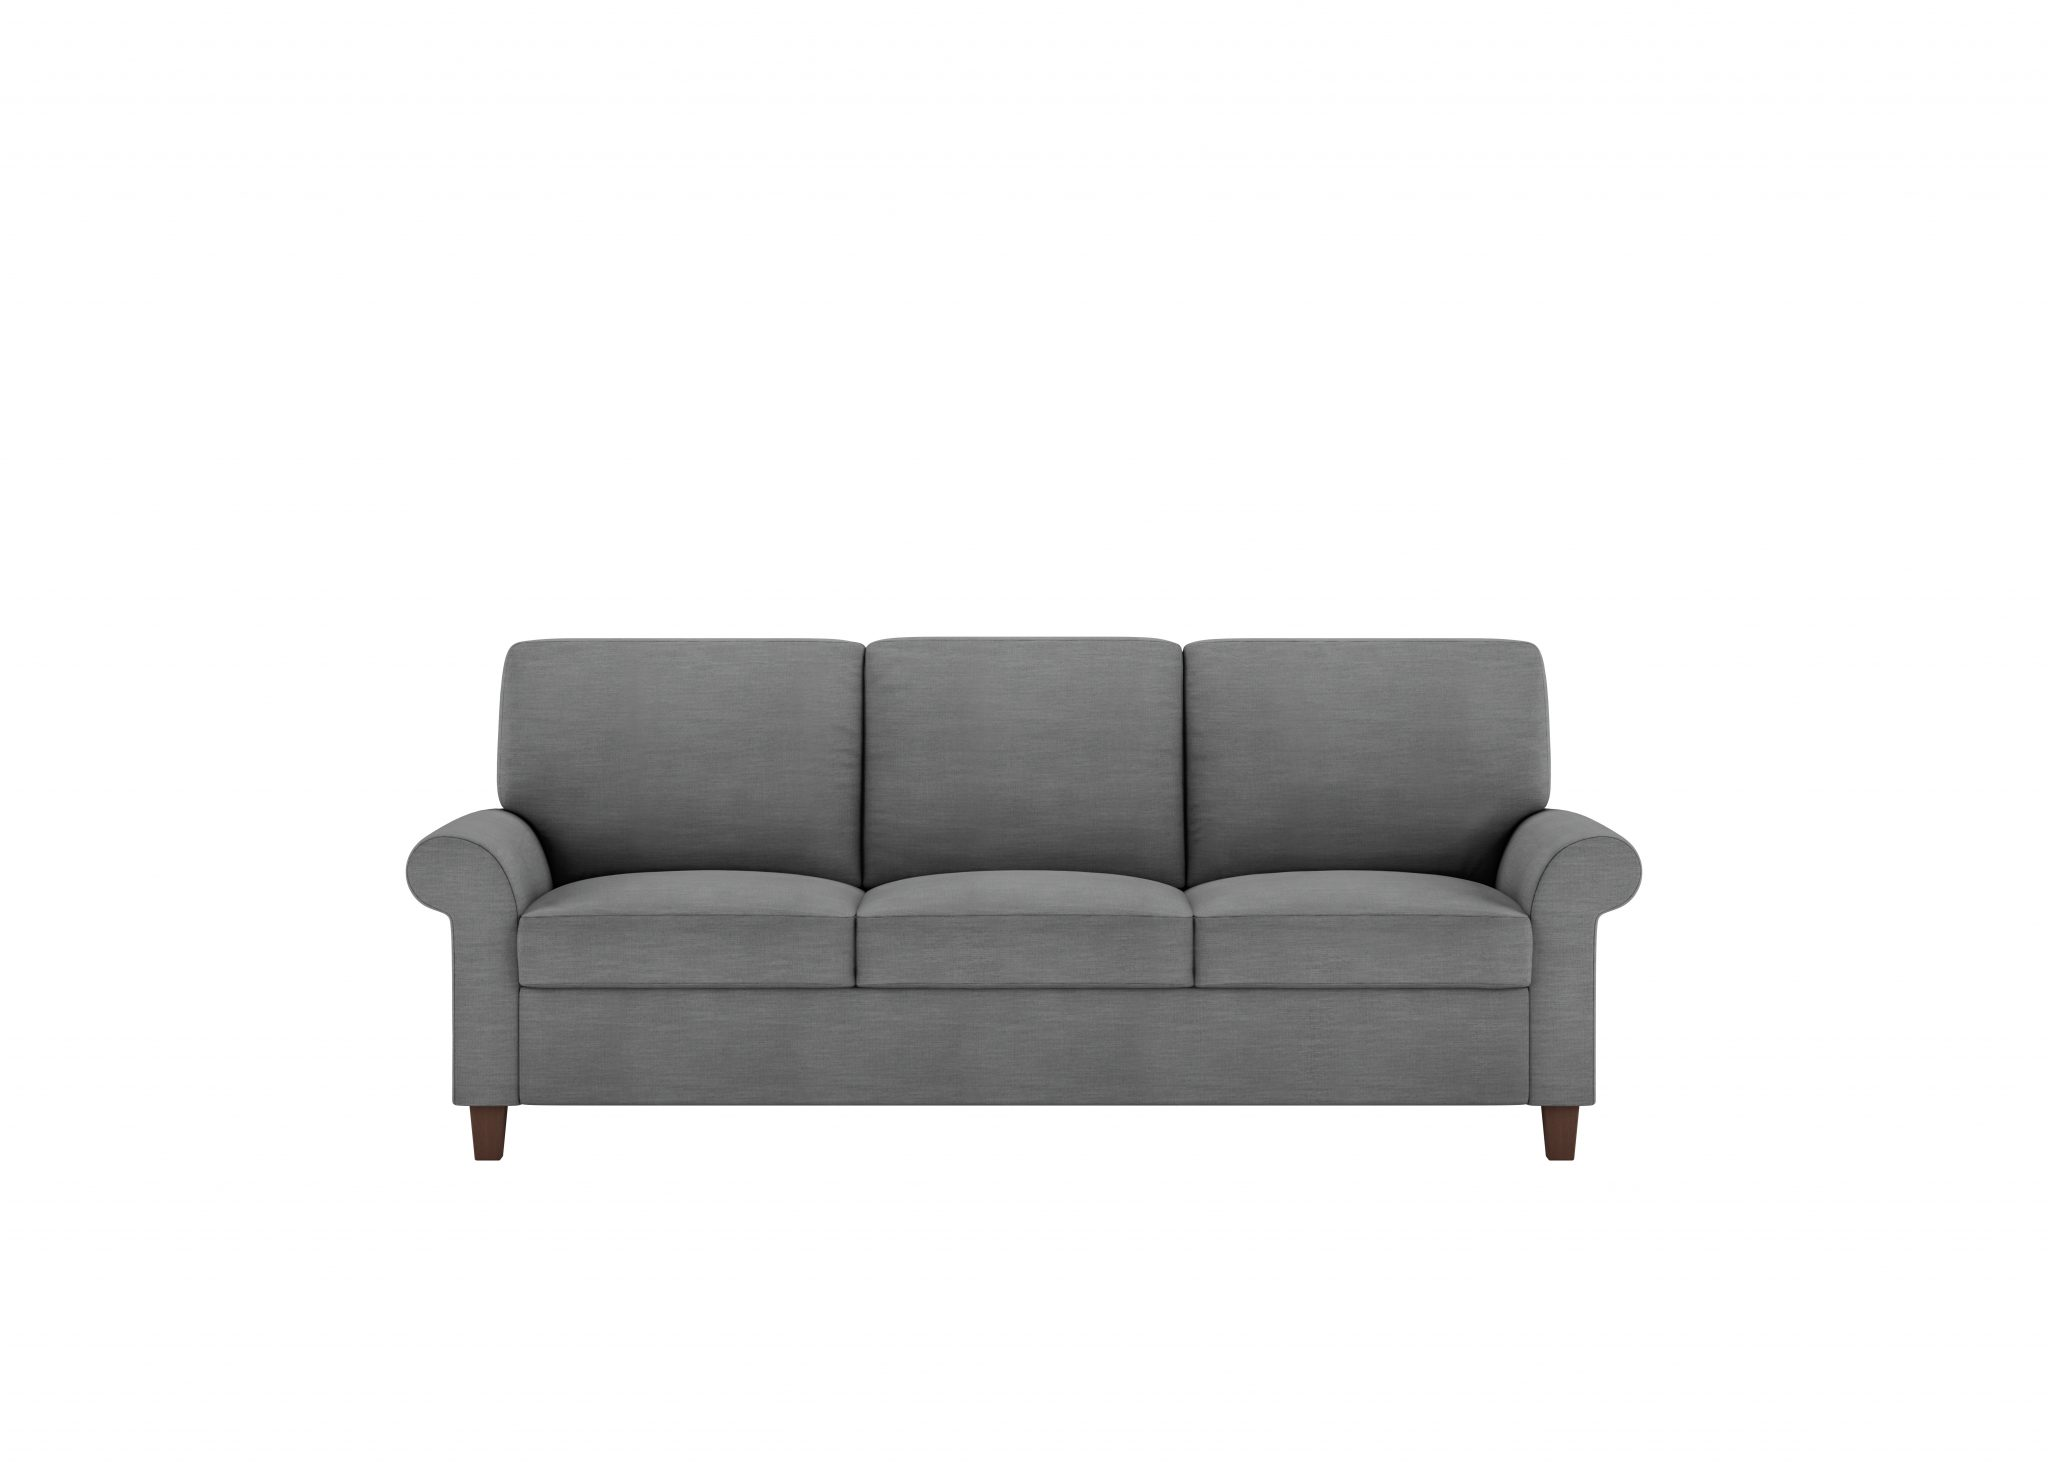 Enjoyable Gibbs Comfort Sleeper Sofa Fraser Wood Elements Ocoug Best Dining Table And Chair Ideas Images Ocougorg